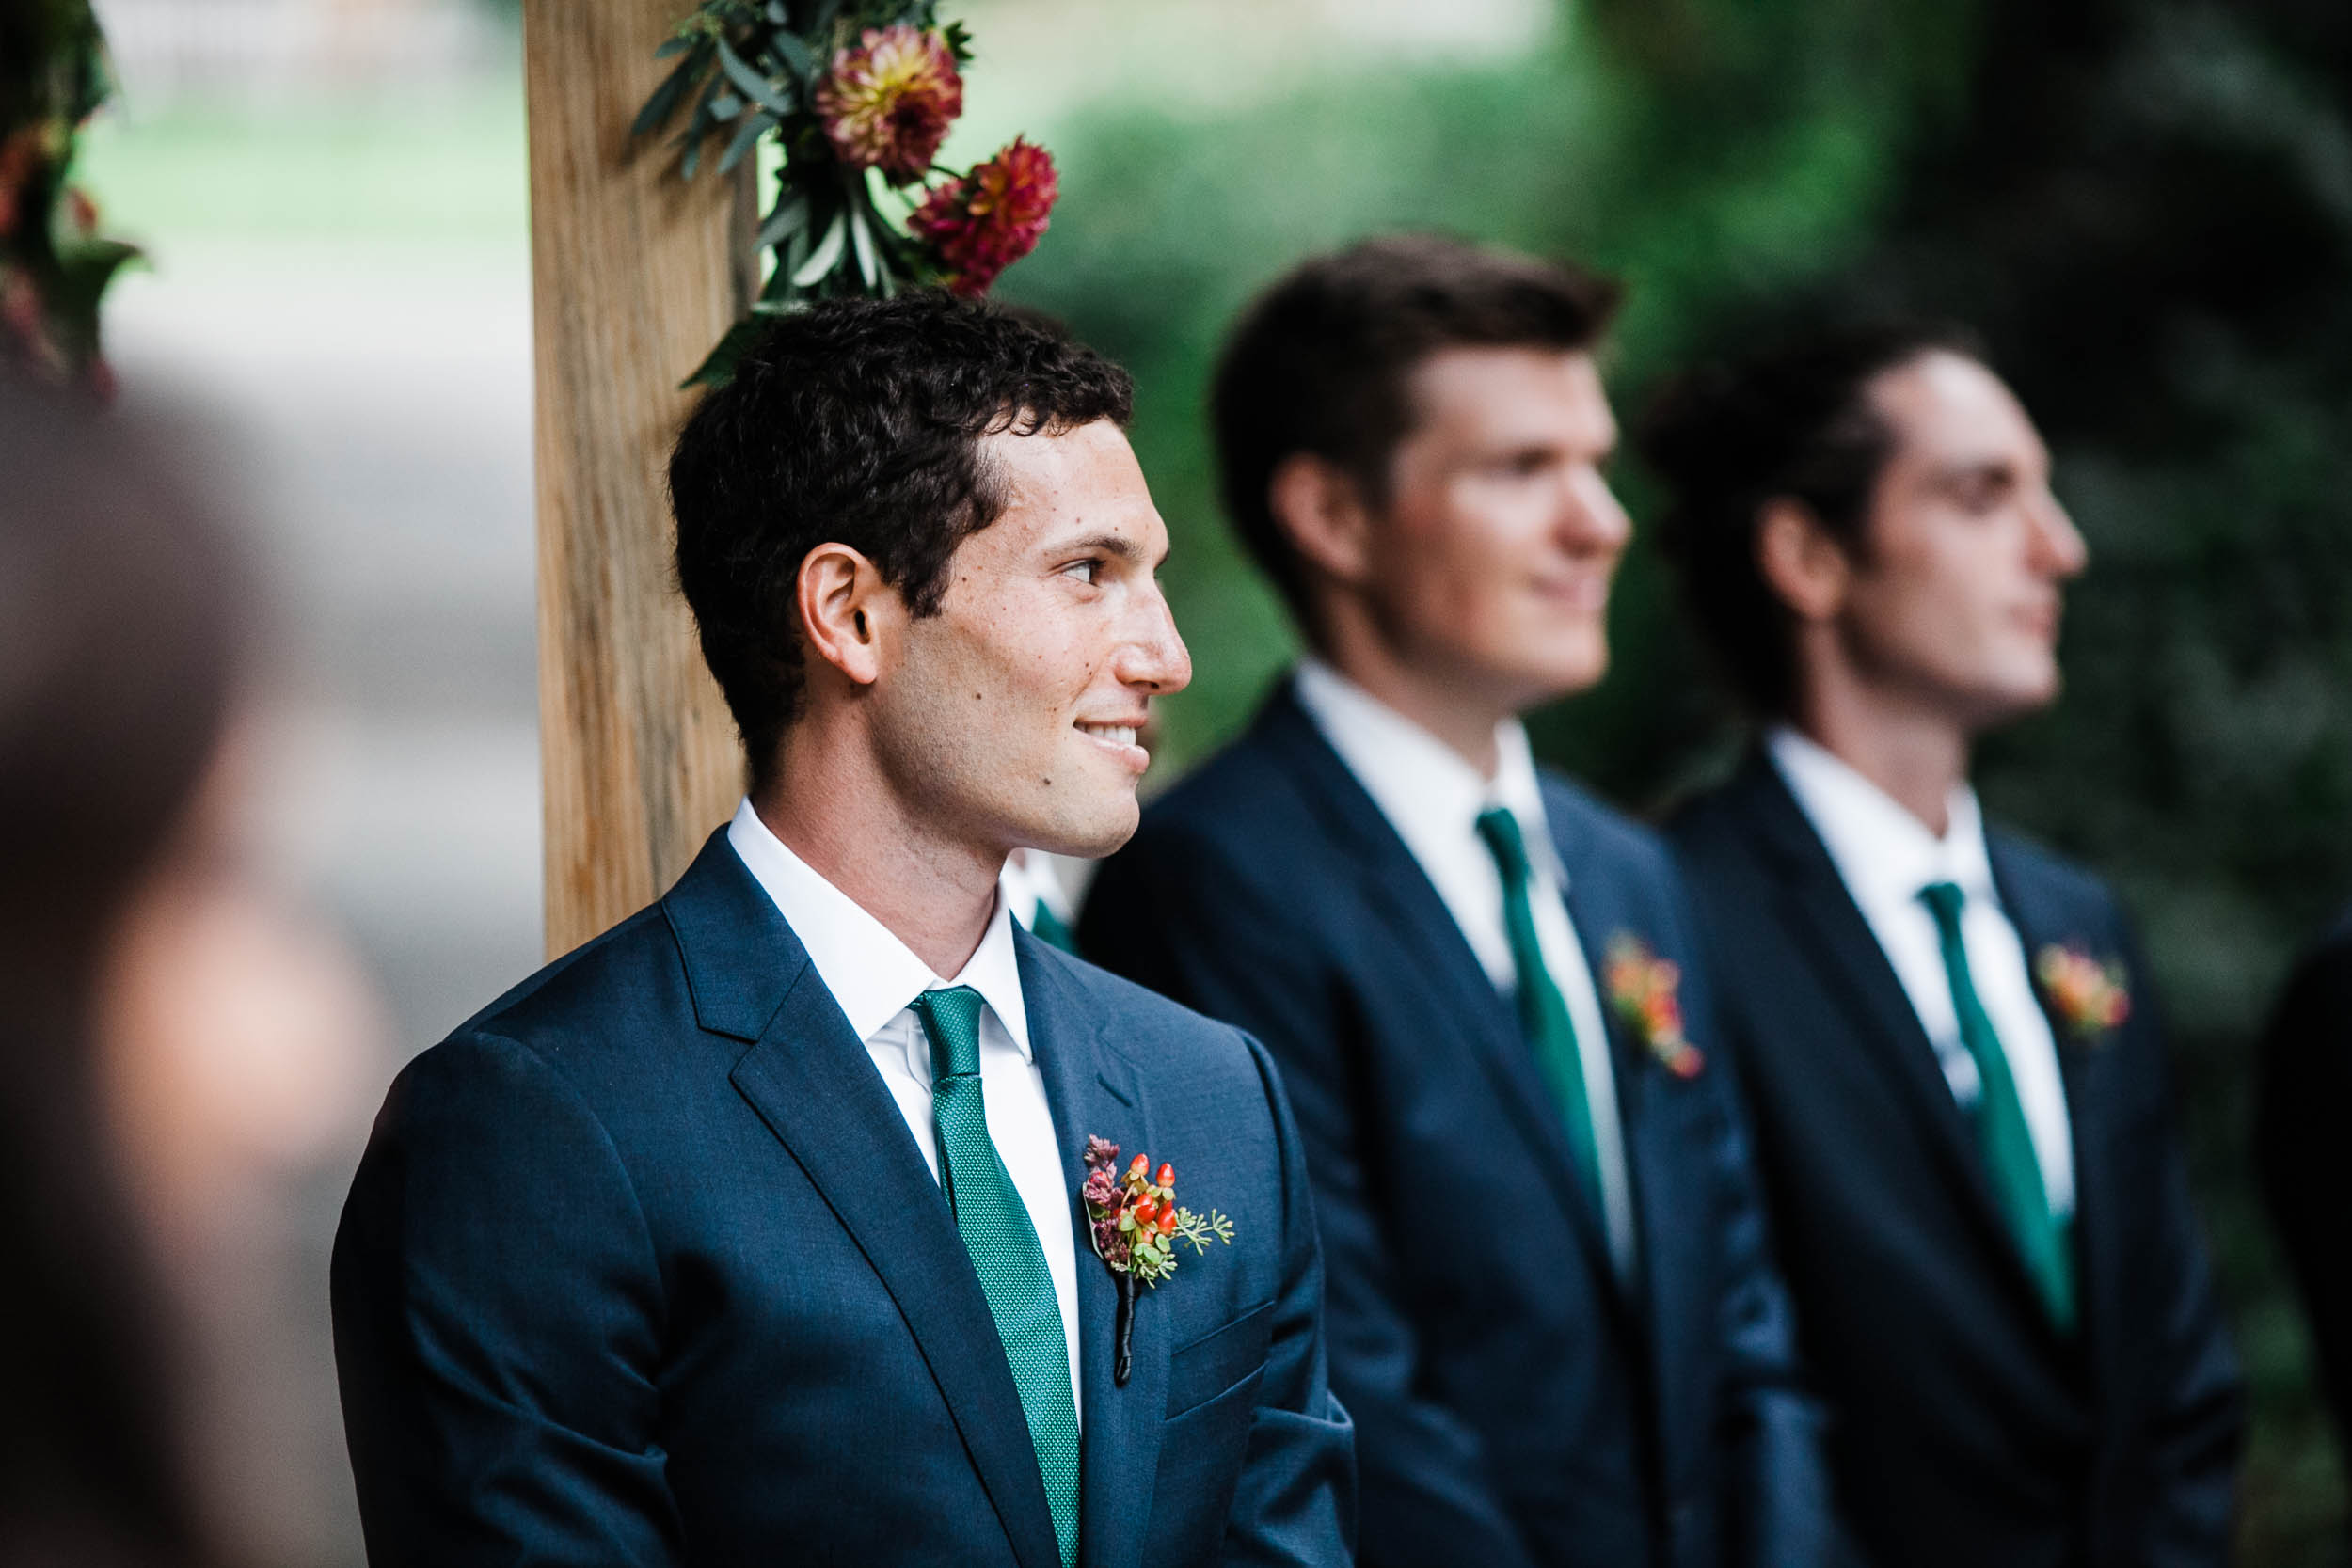 Piedmont Community Hall Wedding Buena Lane Photography